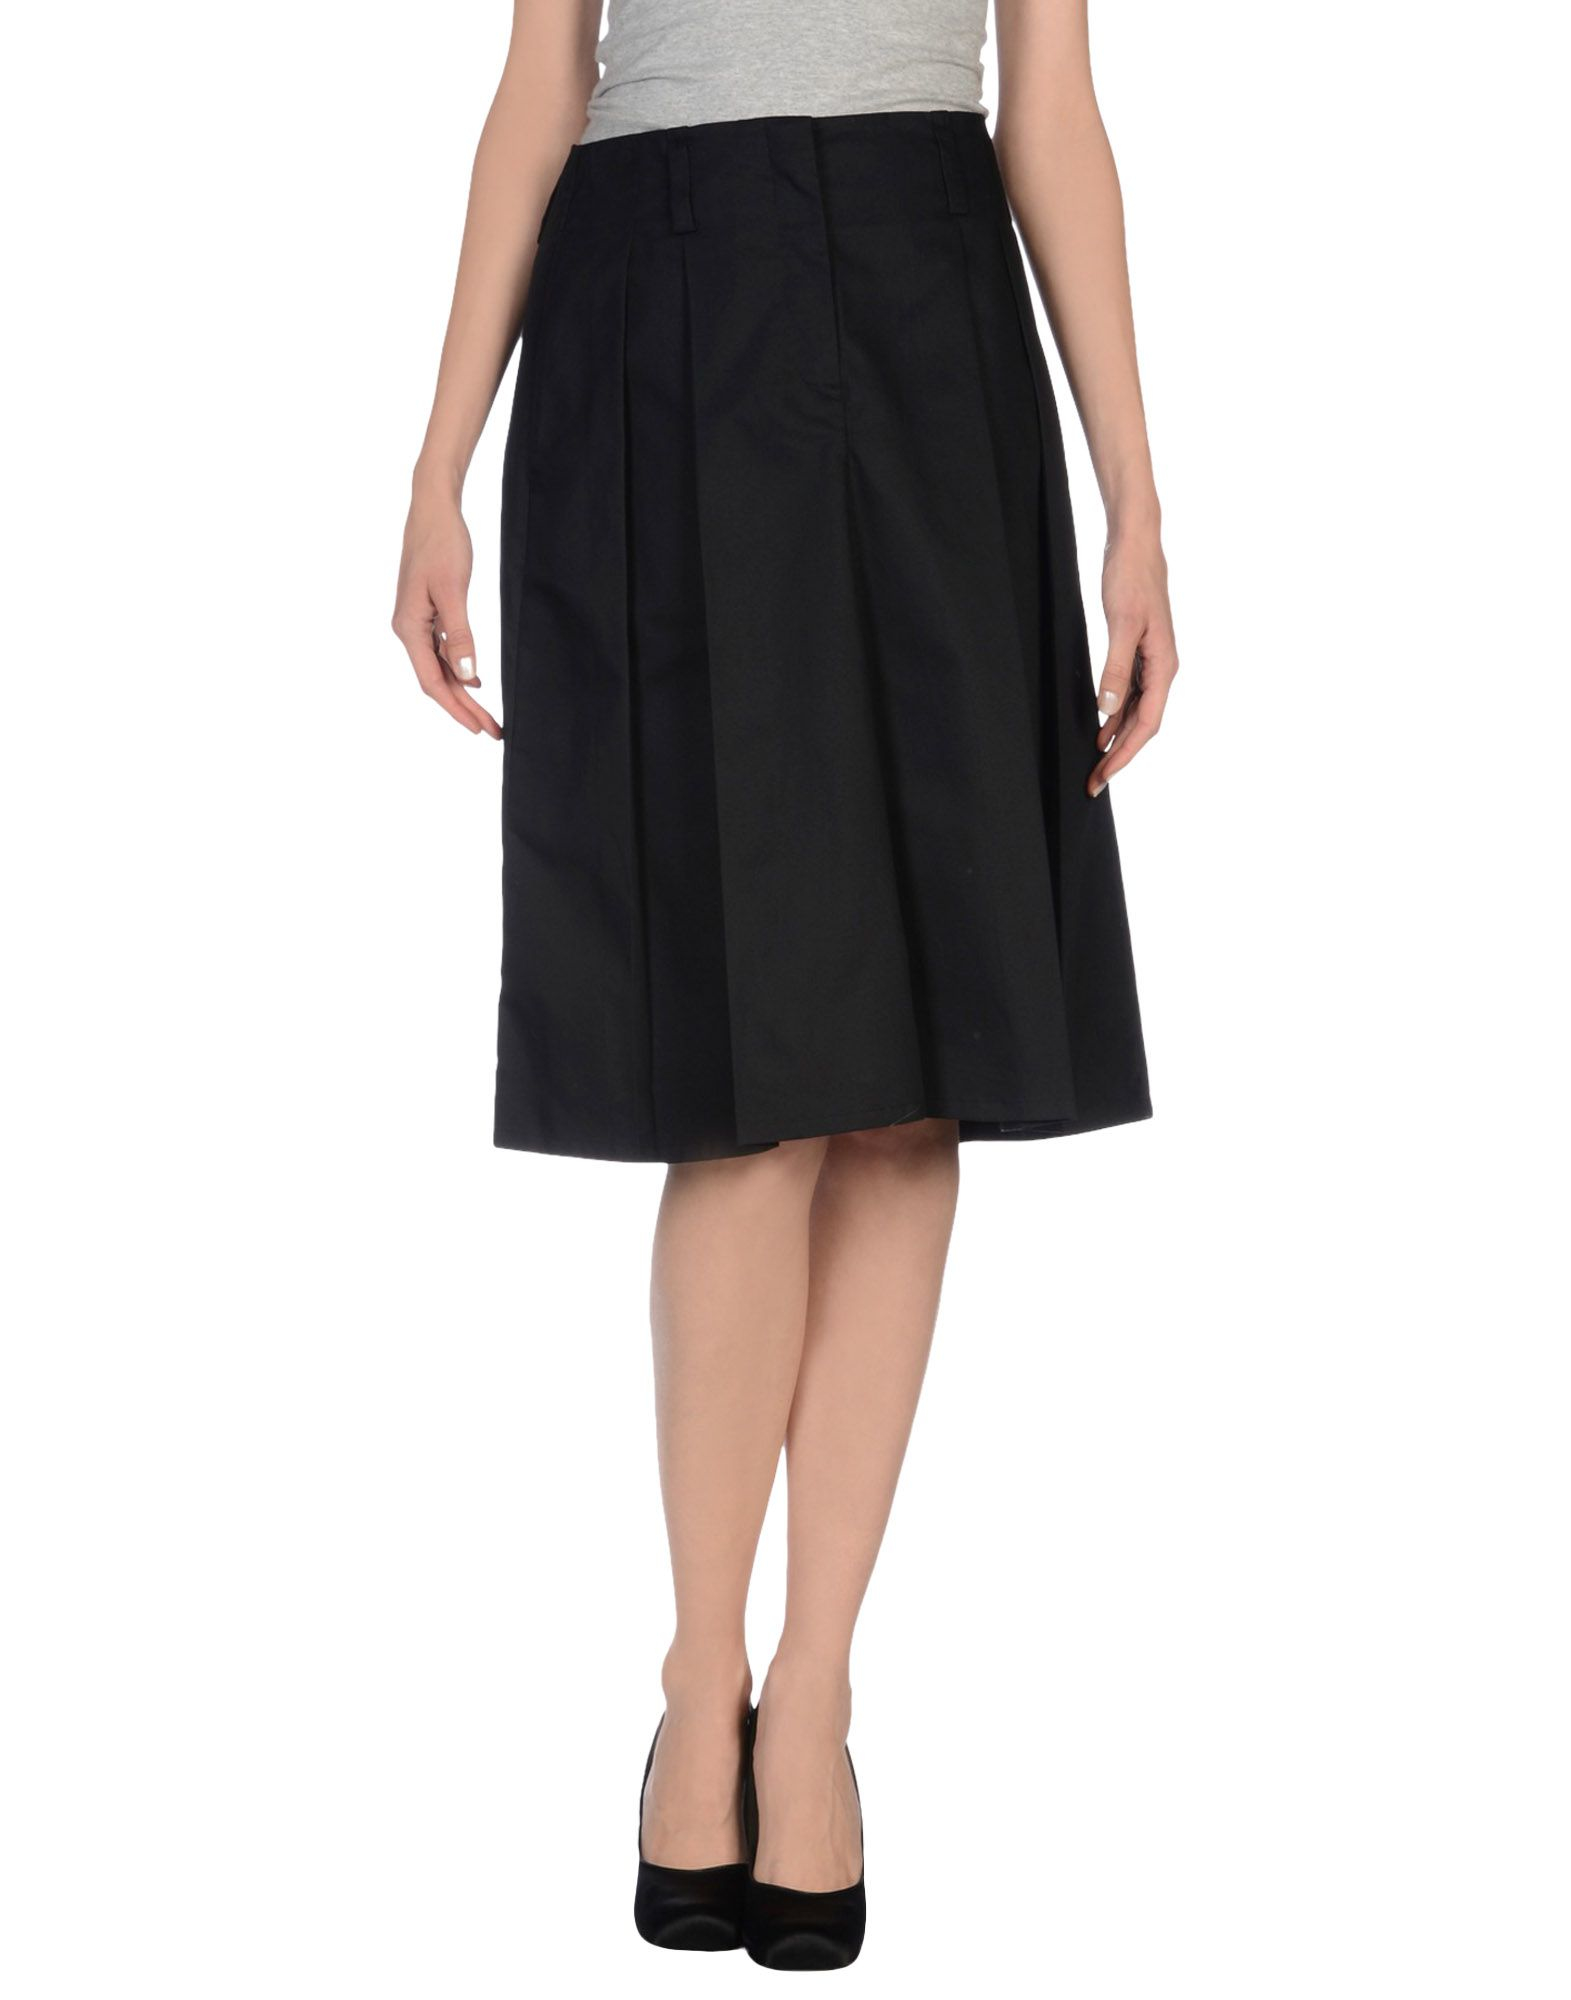 jil sander knee length skirt in black lyst